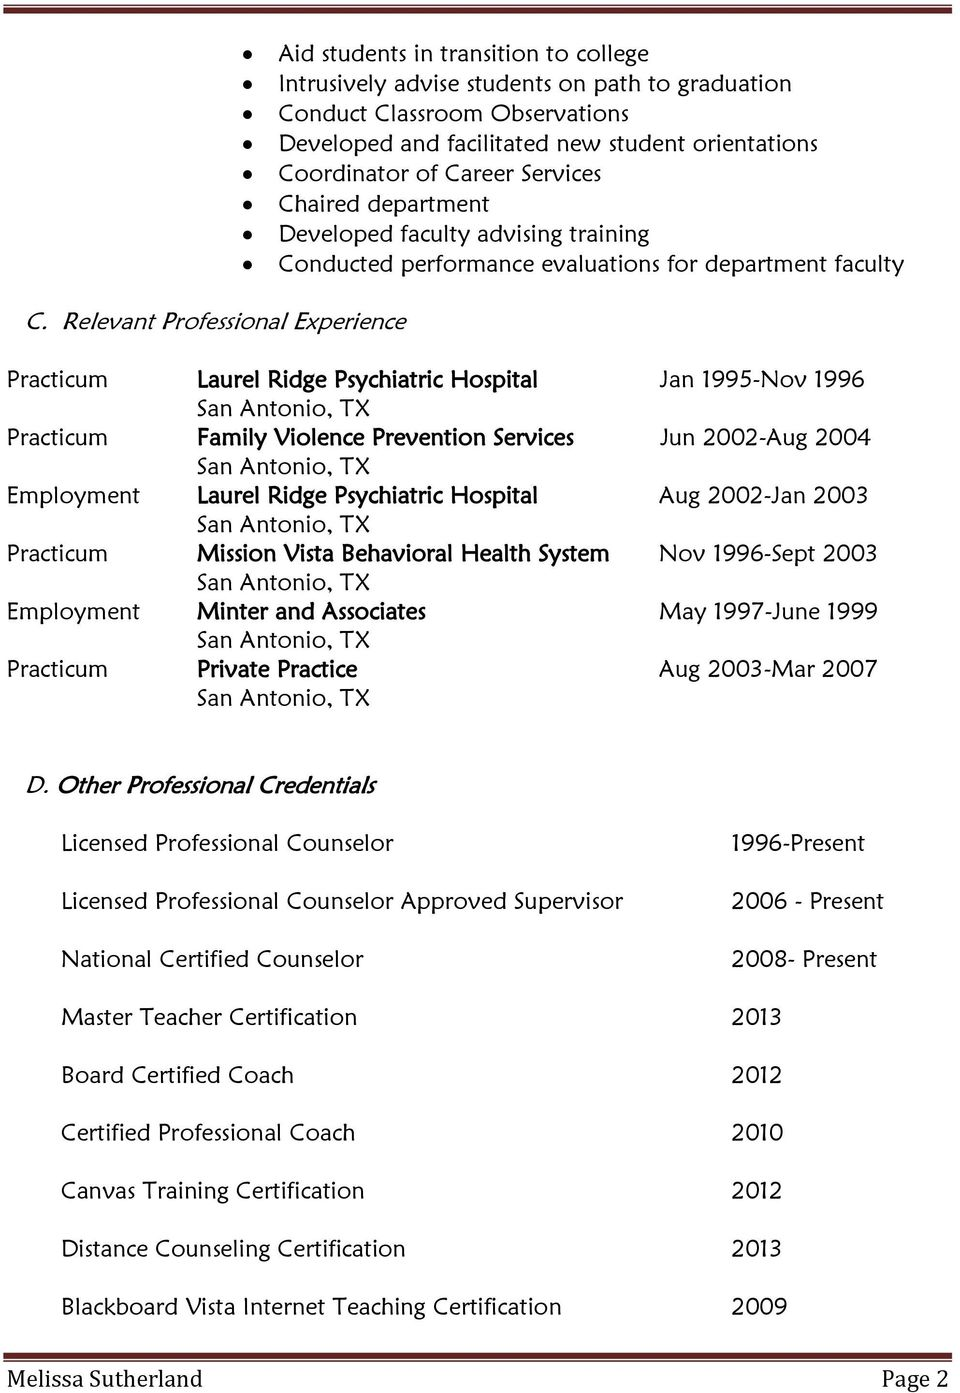 Relevant Professional Experience Practicum Laurel Ridge Psychiatric Hospital Jan 1995-Nov 1996 Practicum Family Violence Prevention Services Jun 2002-Aug 2004 Employment Laurel Ridge Psychiatric